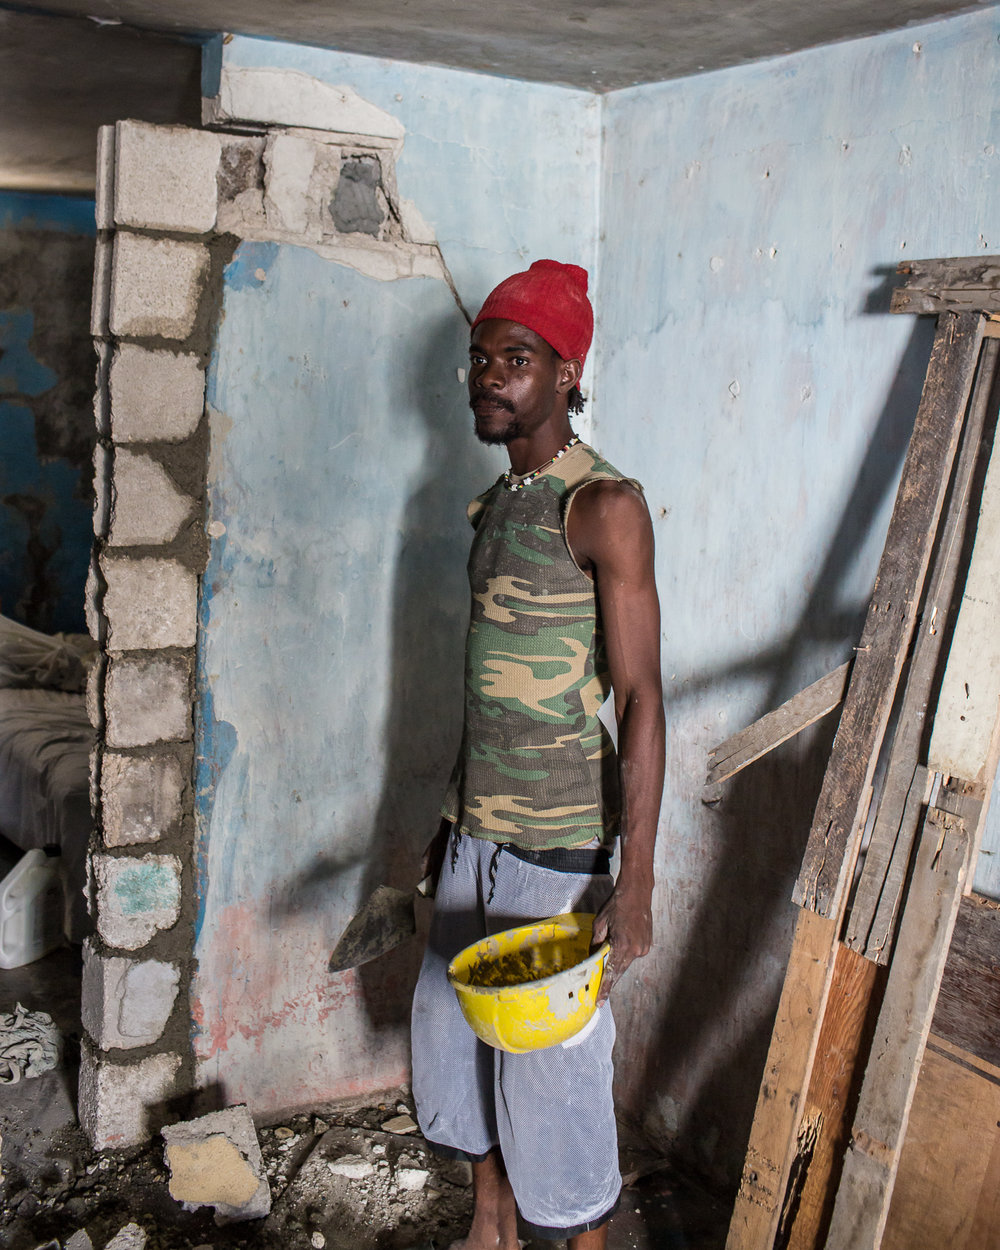 Steevenson Deus poses for a portrait while repairing his earthquake-damaged home on Thursday, December 18, 2014 in Port-au-Prince, Haiti. Fort National was among the hardest hit areas of Port-au-Prince in the 2010 earthquake, but rebuilding has been slow to non-existent. Residents still mostly lack electricity and running water.